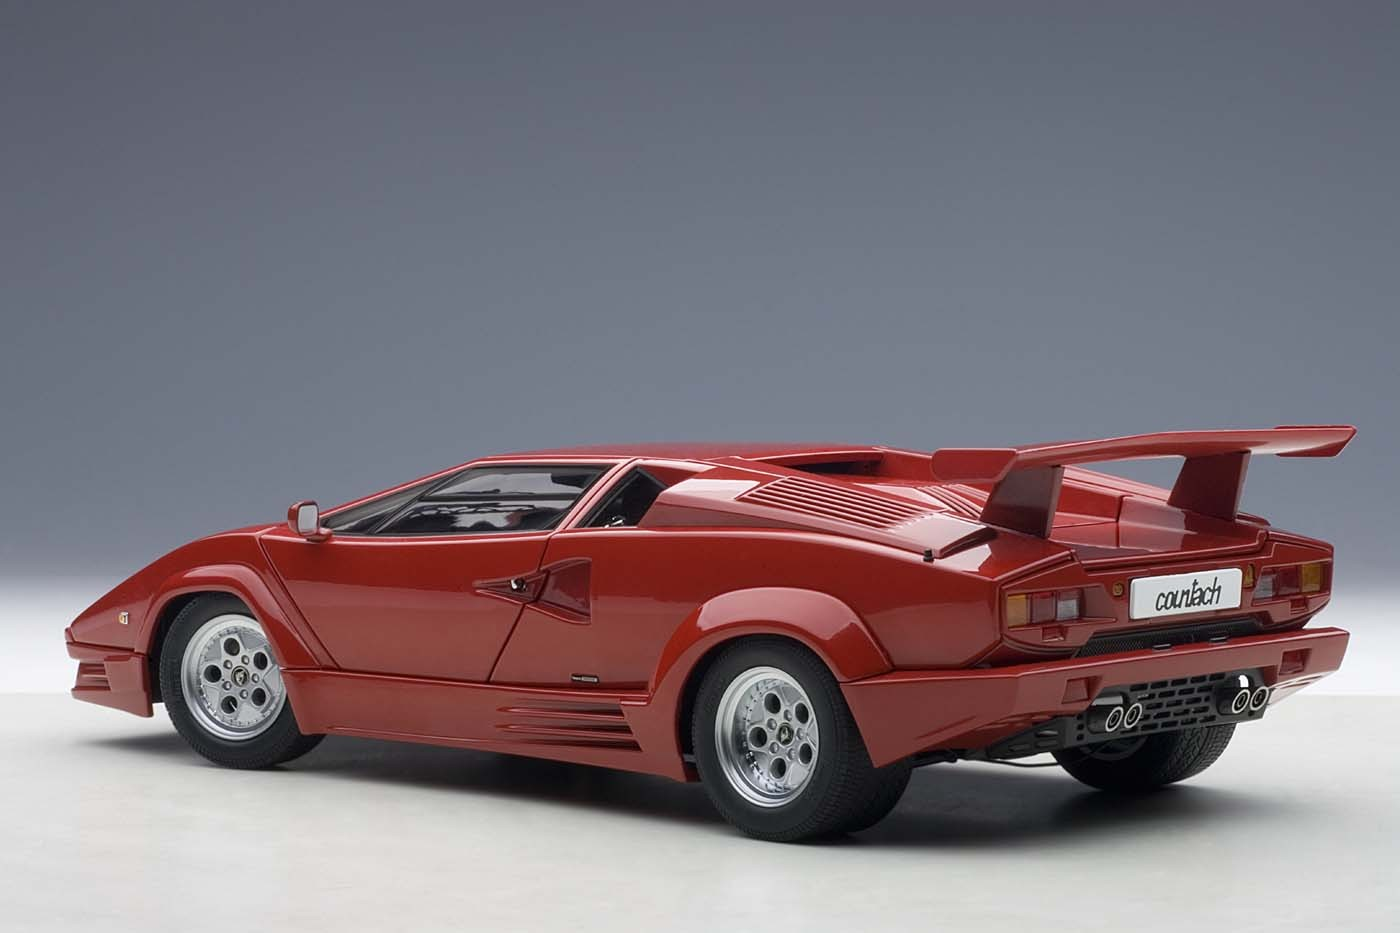 Autoart Highly Detailed Die Cast Model Lamborghini Countach 25th